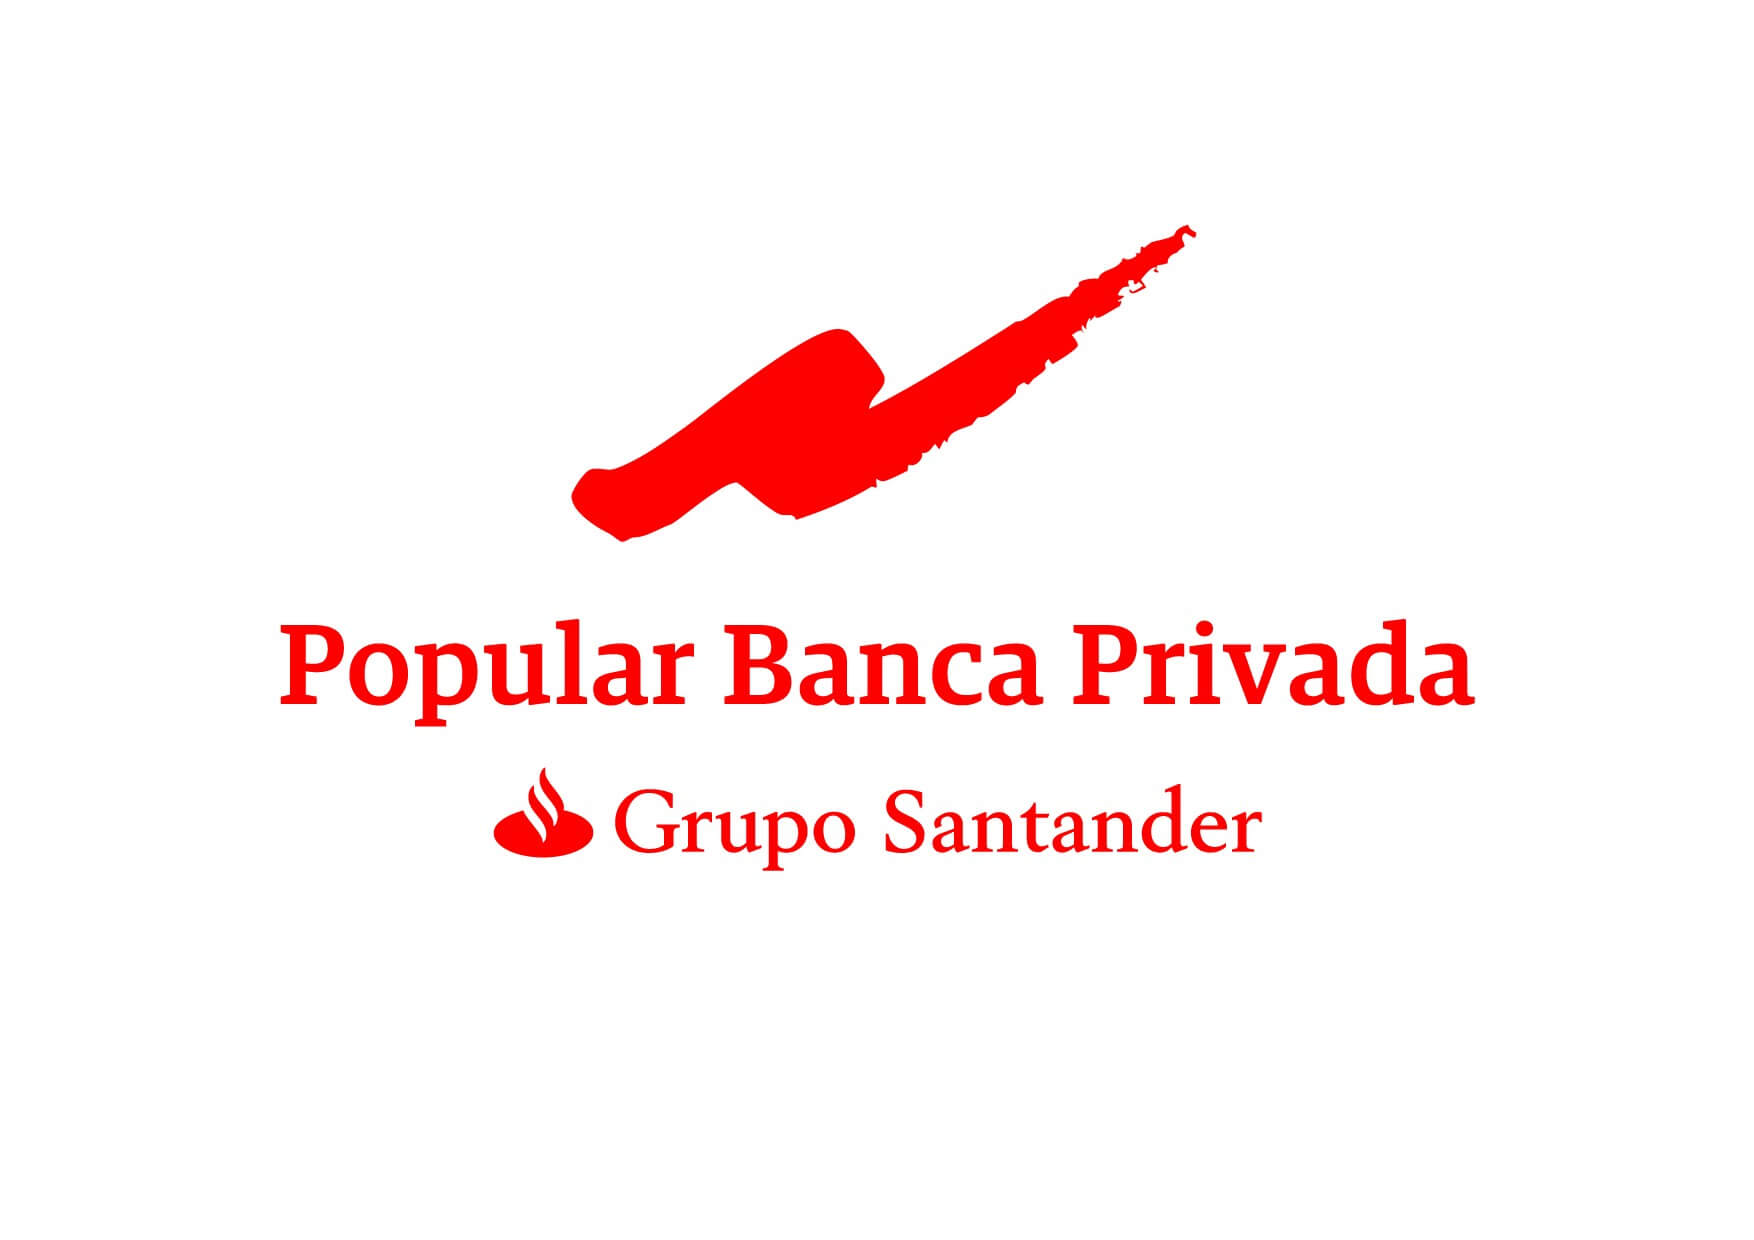 Logo del Banco Popular Banca Privada